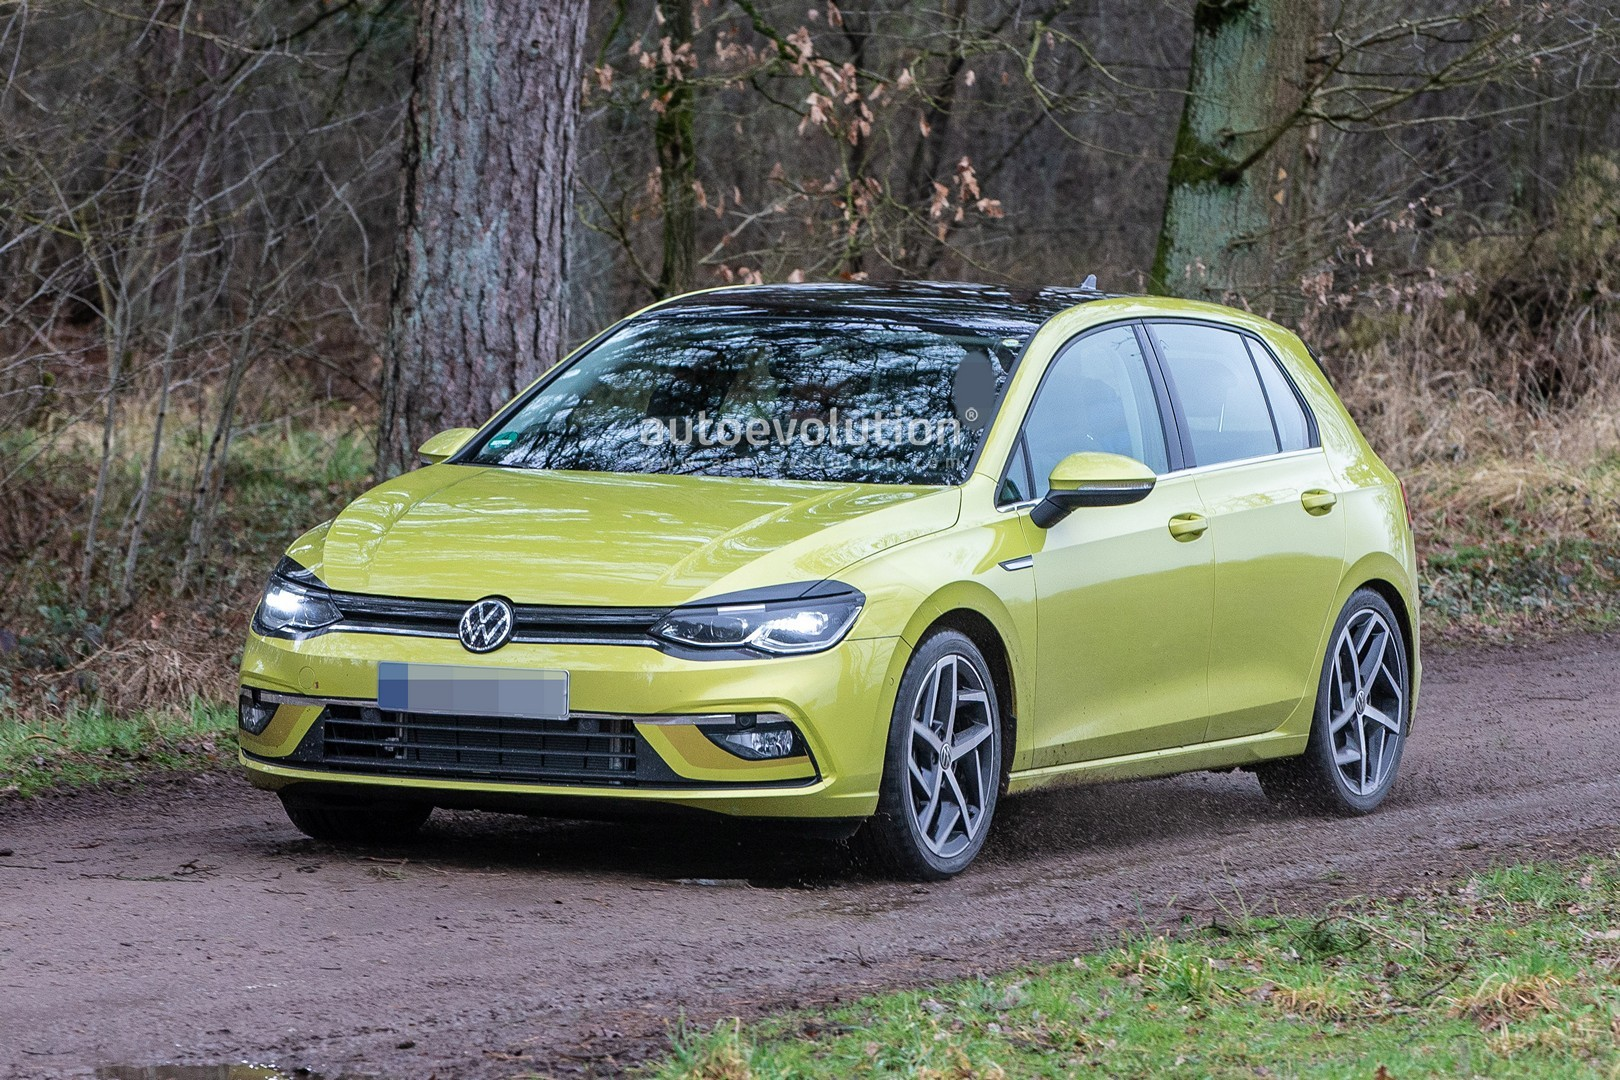 New Golf R To Be Unveiled In 2020 With 330 Hp New Report